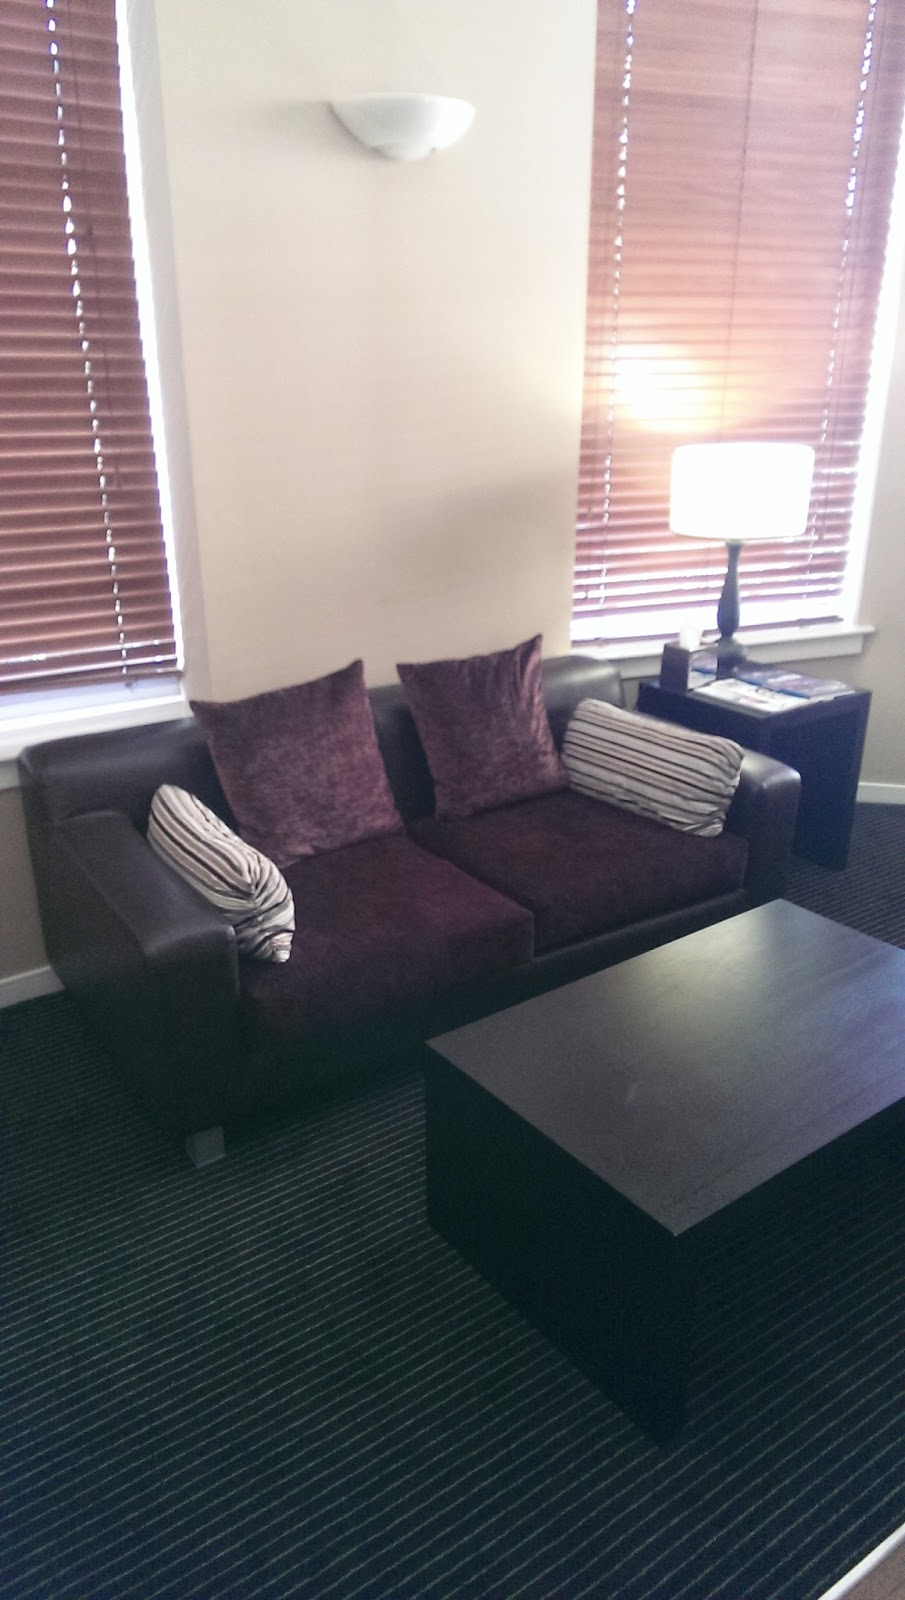 stylecation stylish stay merchant city glasgow merchant city is glasgow s most stylish area with high end boutiques such as mulberry and ralph lauren last week we stayed here at luxury serviced